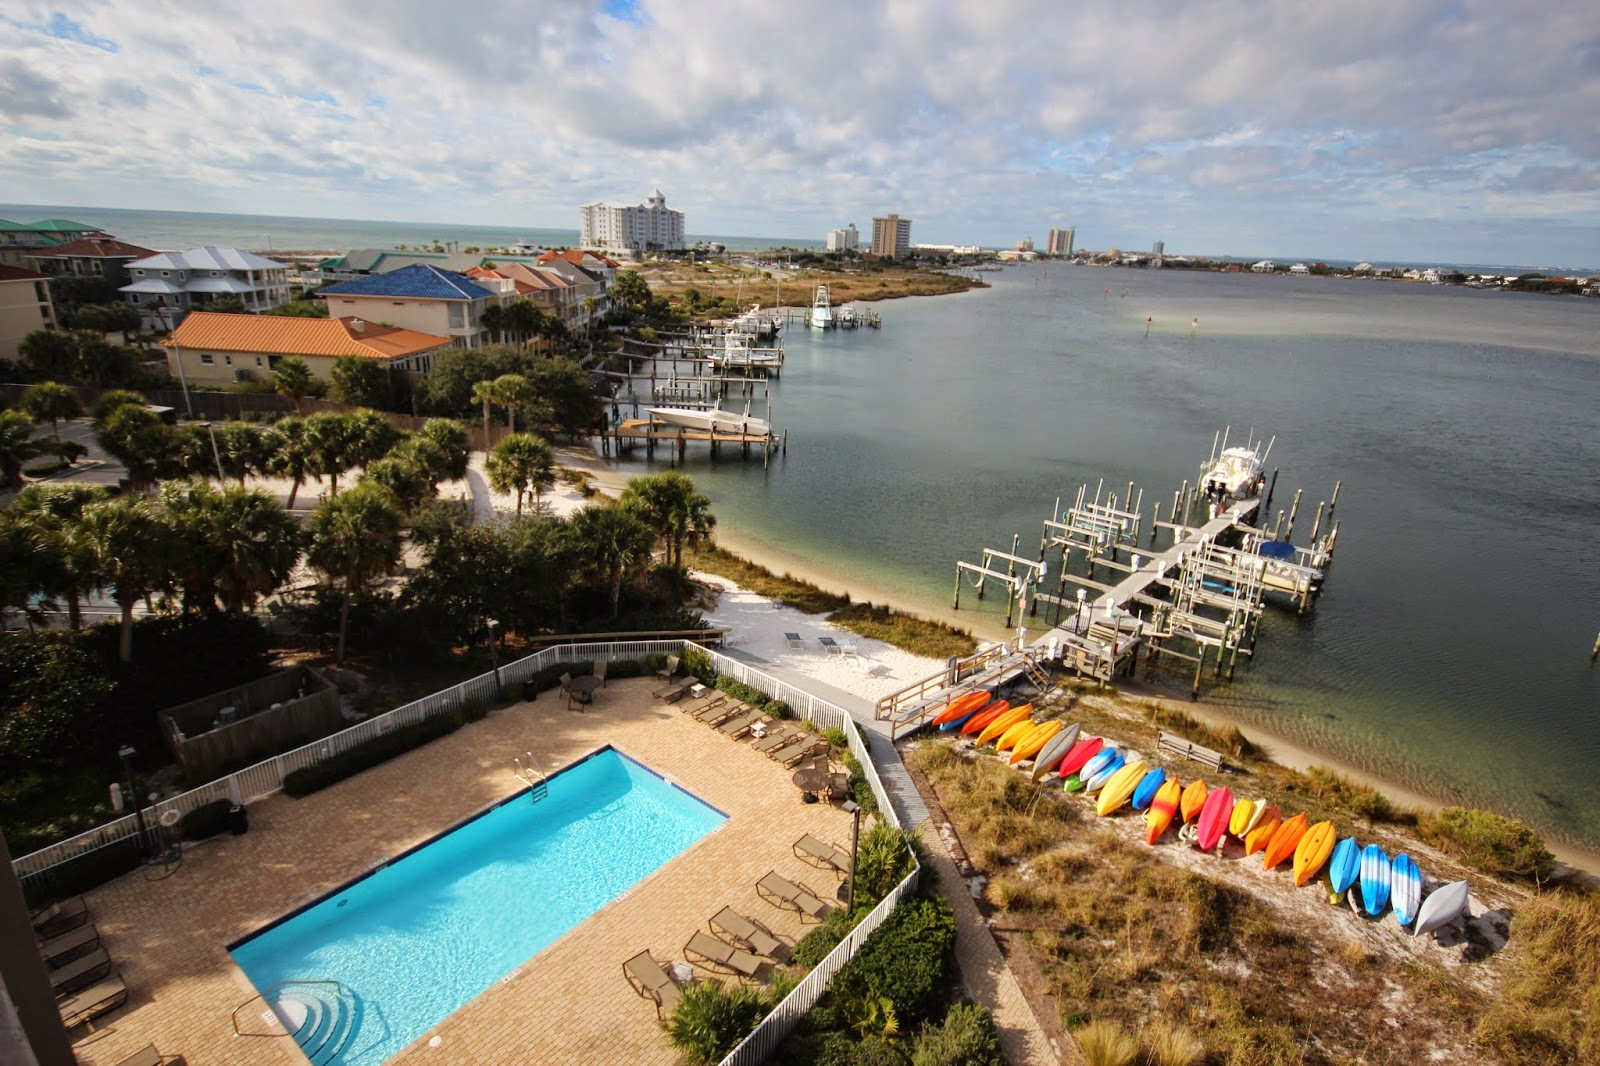 View from 6th floor balcony at South Harbour Condos overlooking Little Sabine Bay